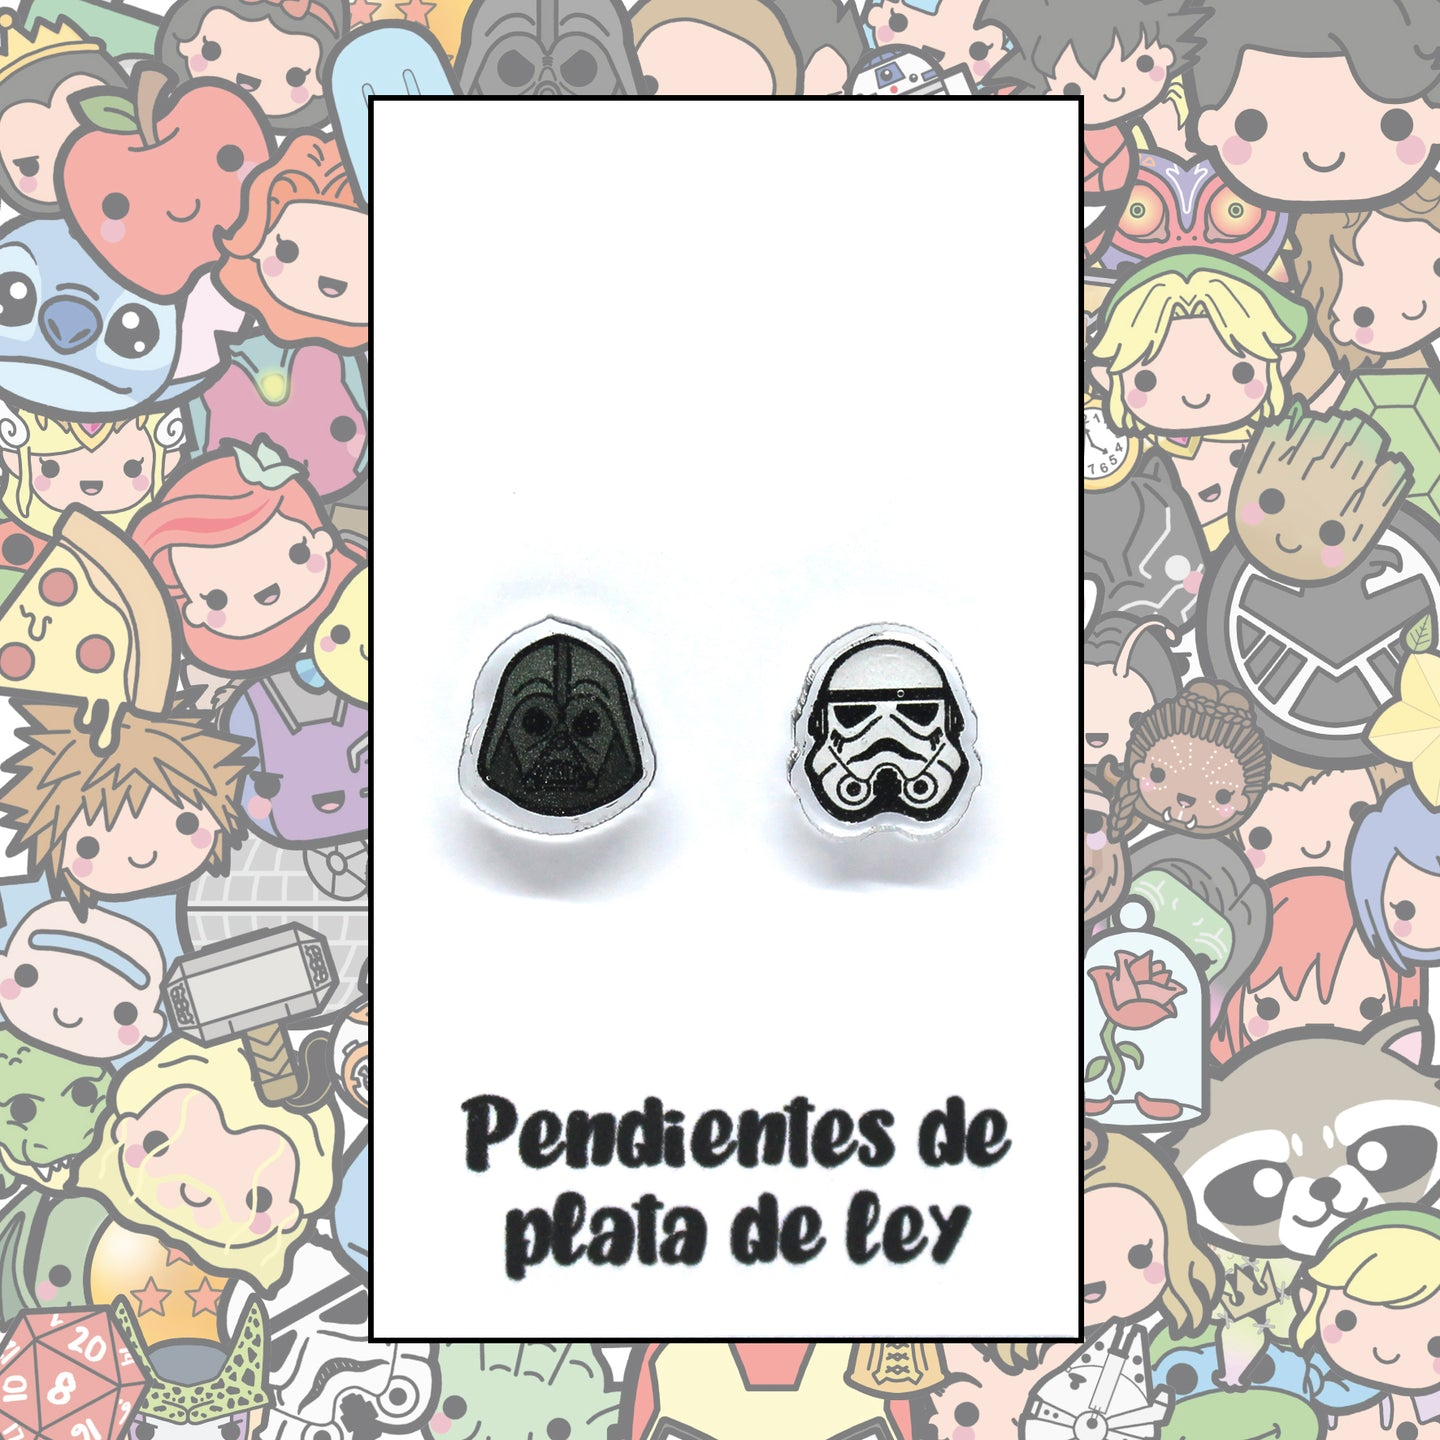 Star Wars Pendientes Kawaii Darth Vader y Stormtrooper